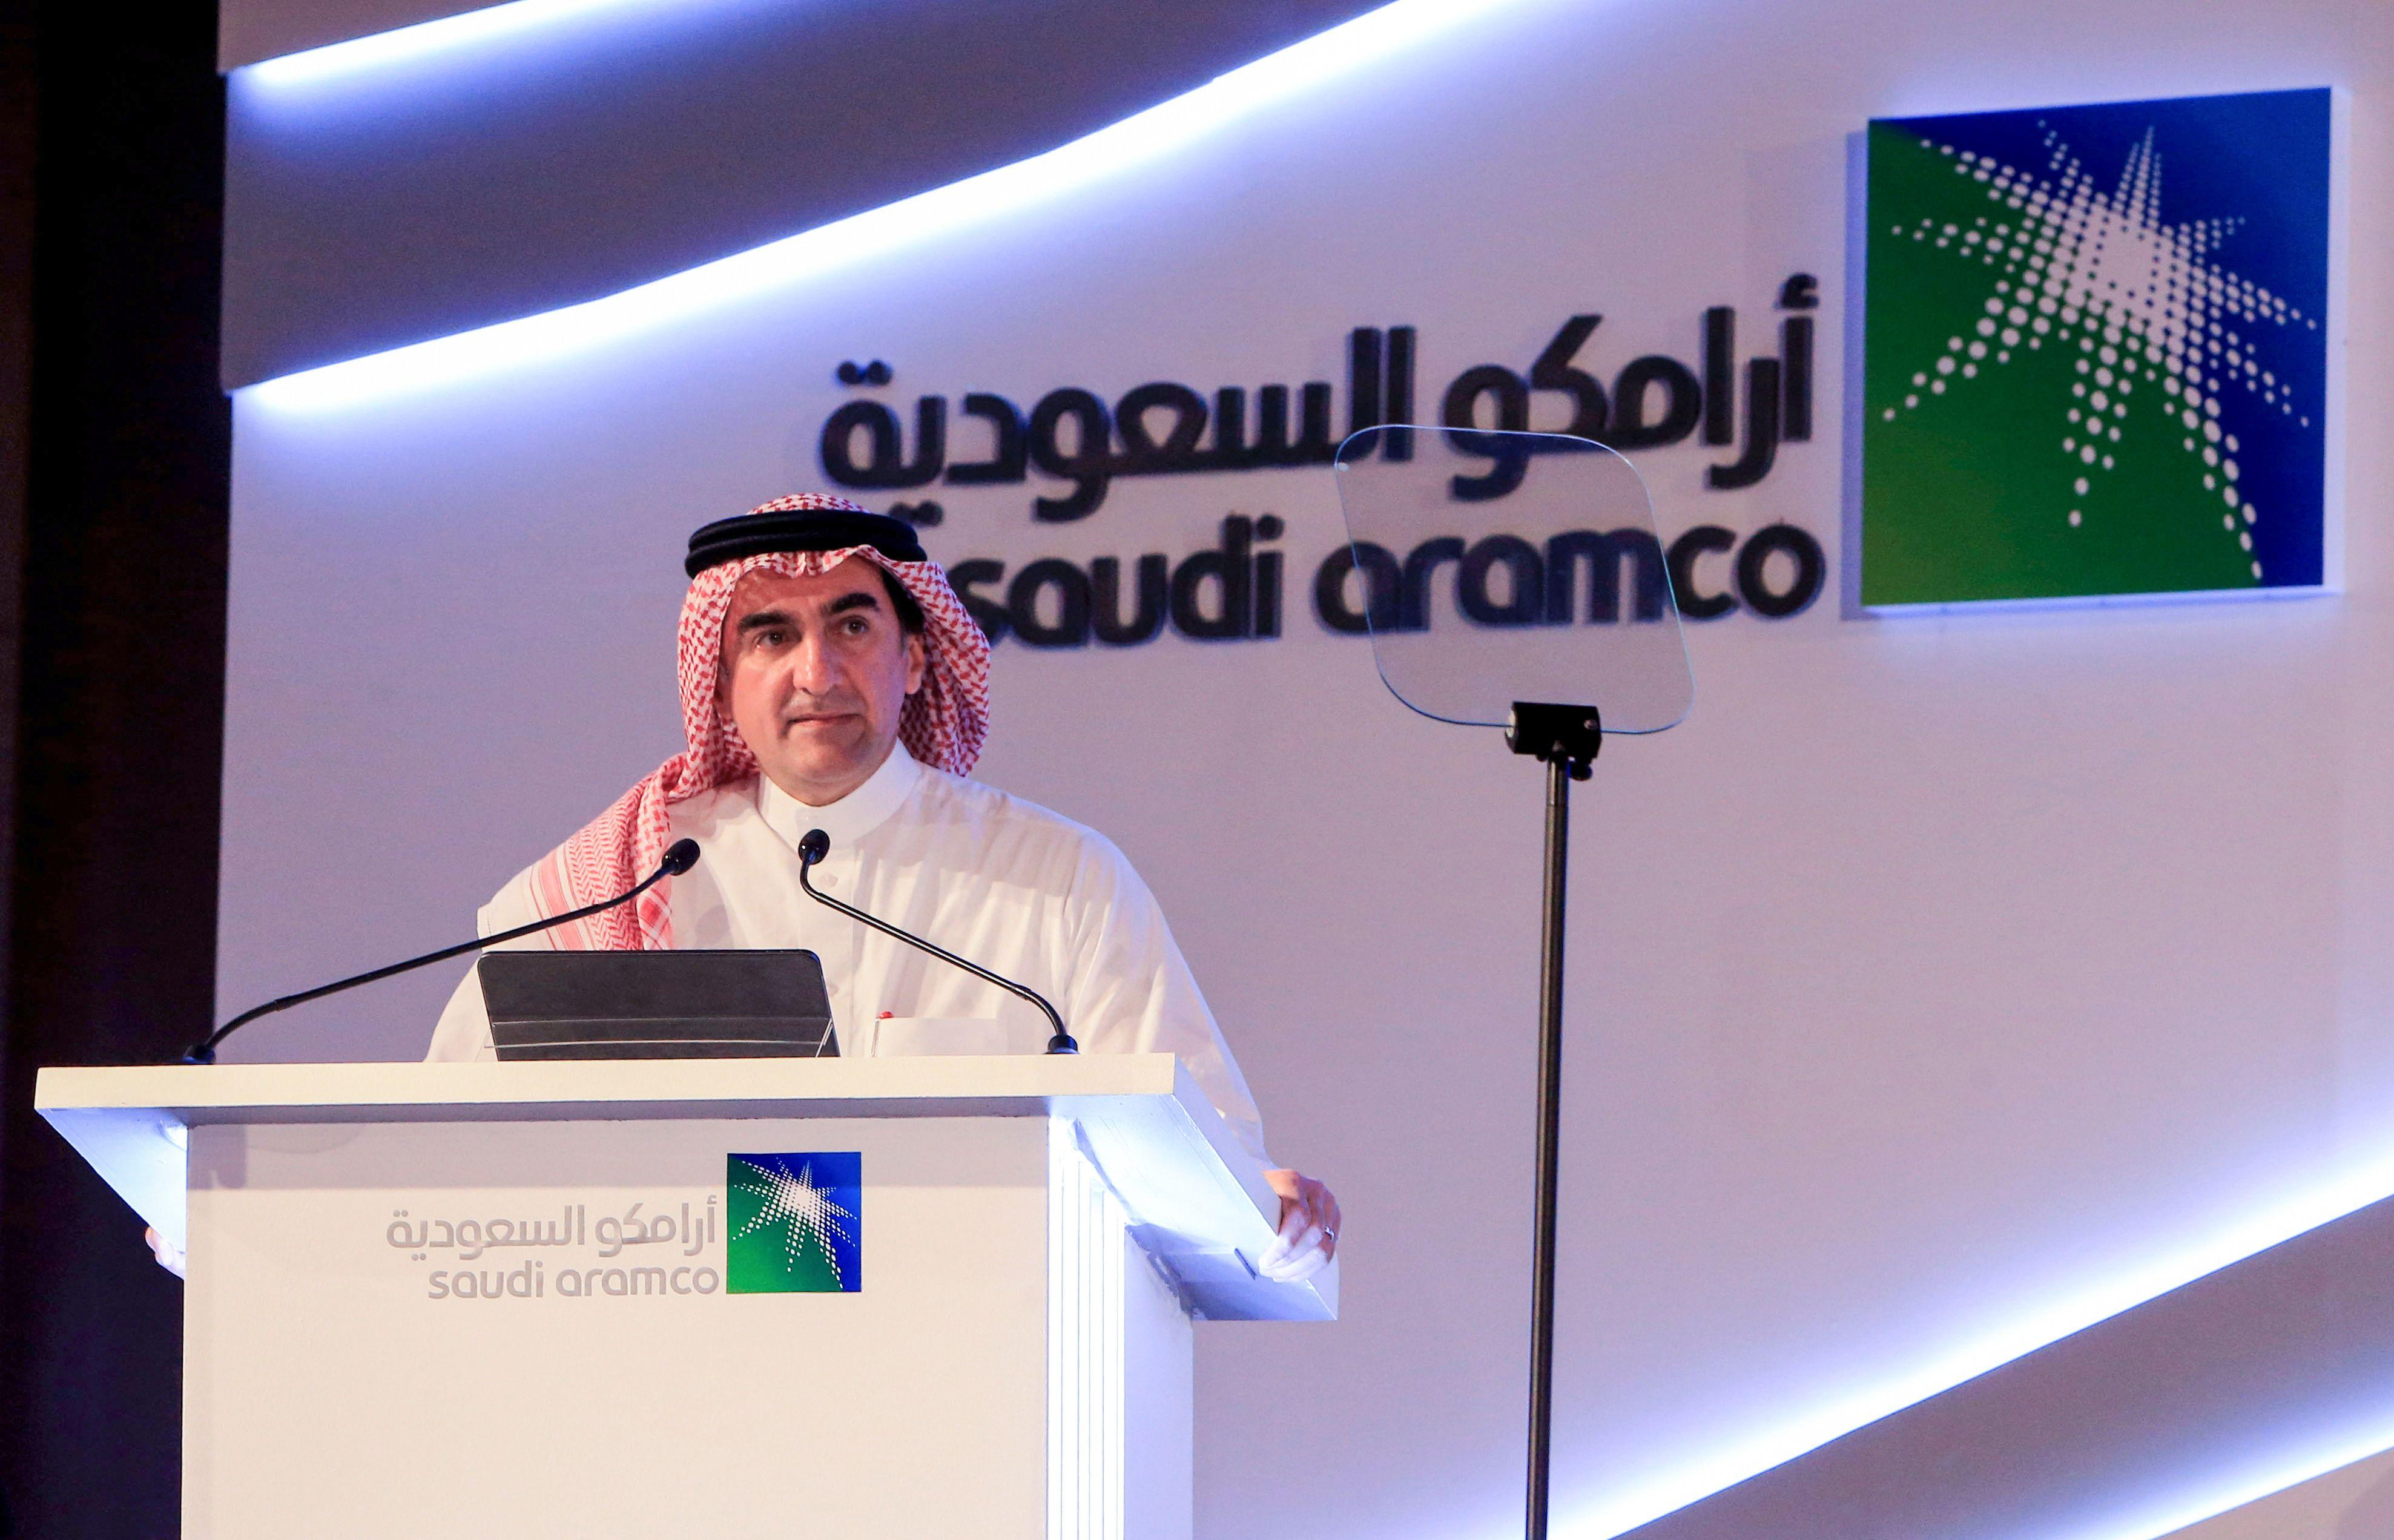 Saudi Aramco Chairman Yasir Al-Rumayyan: 'We are confident in our investment story'